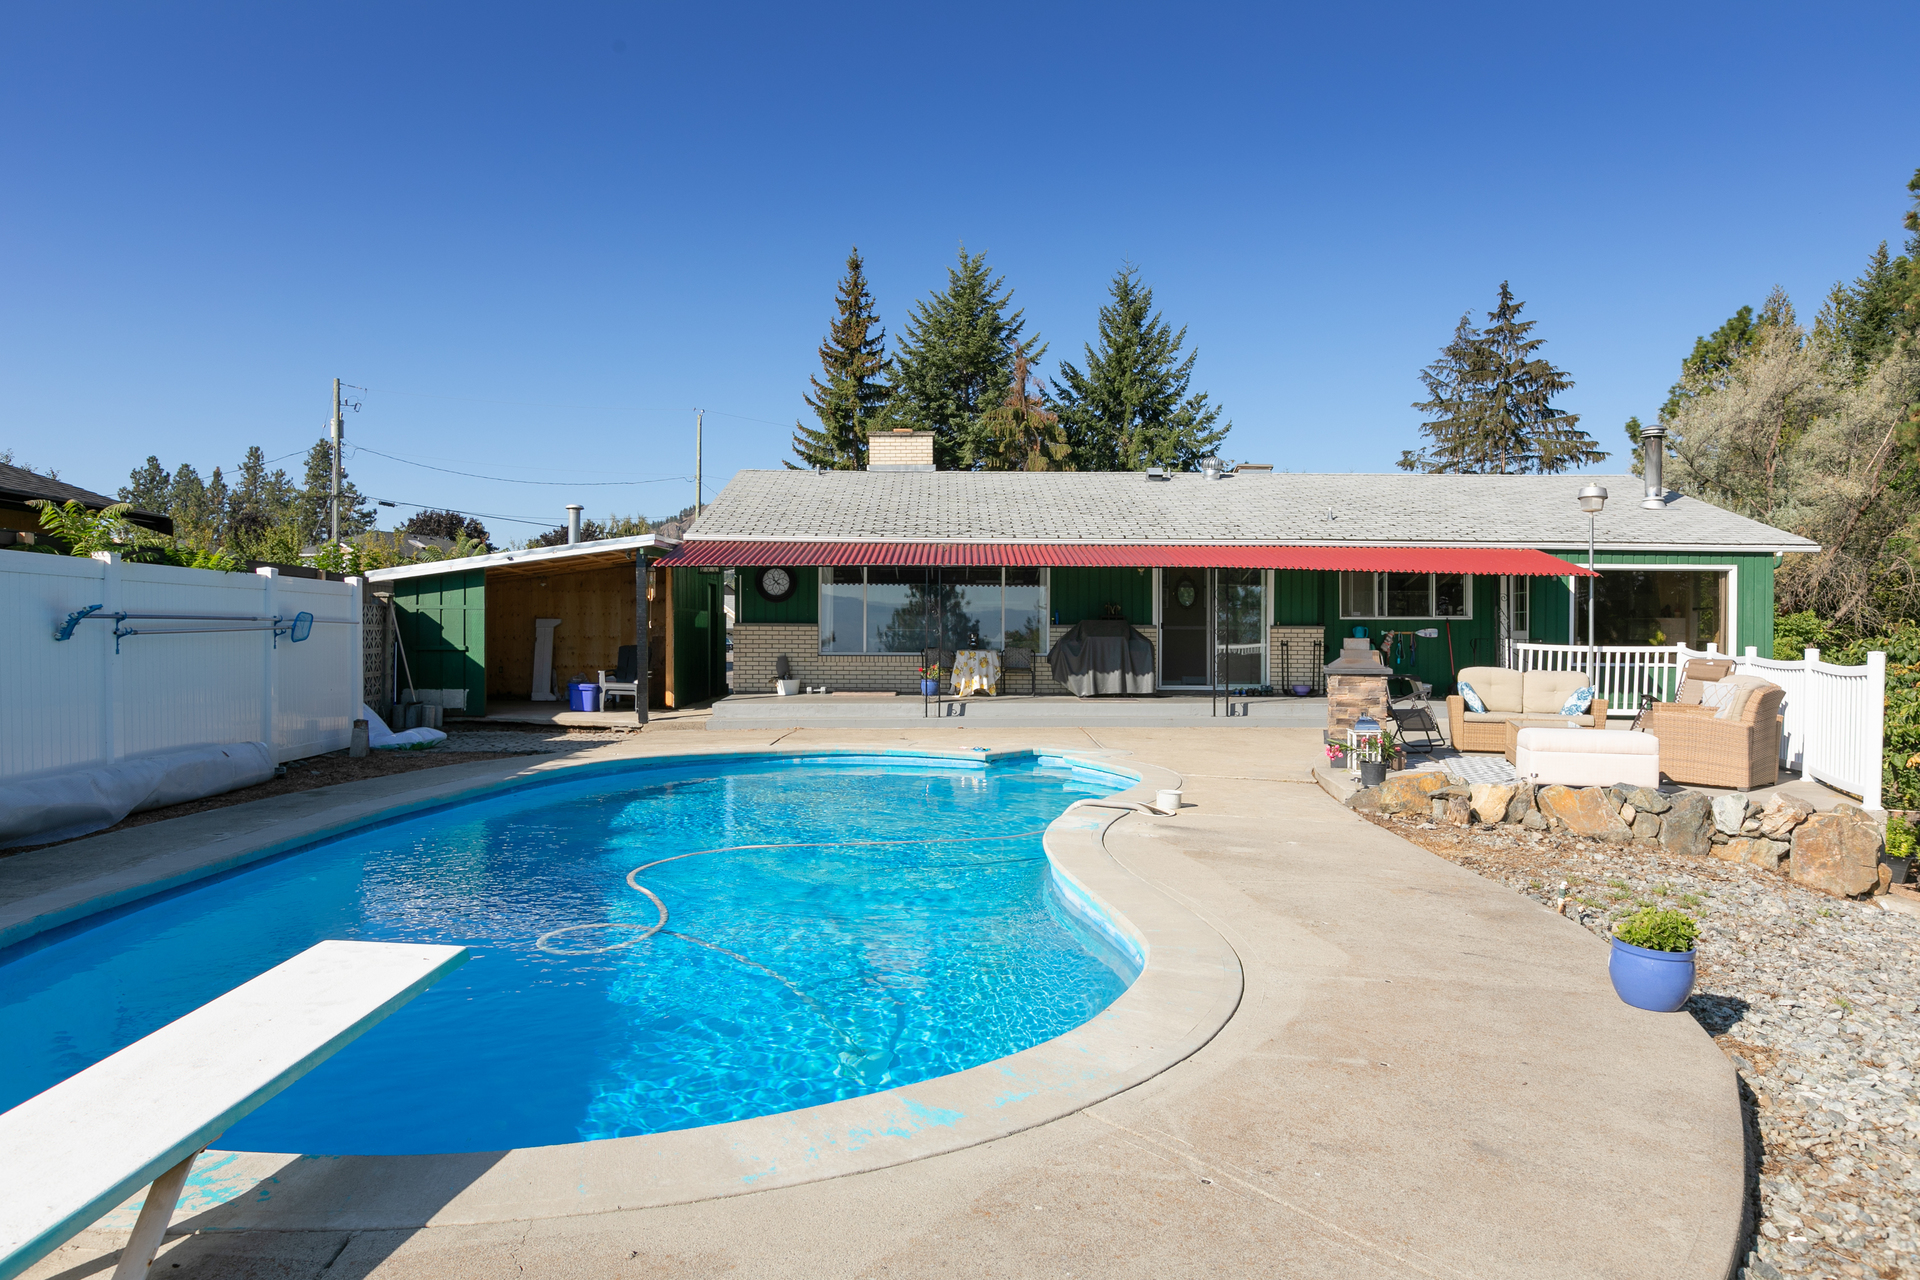 5d4_4701-edit at 2511 Hillsborough Road, West Kelowna, Central Okanagan